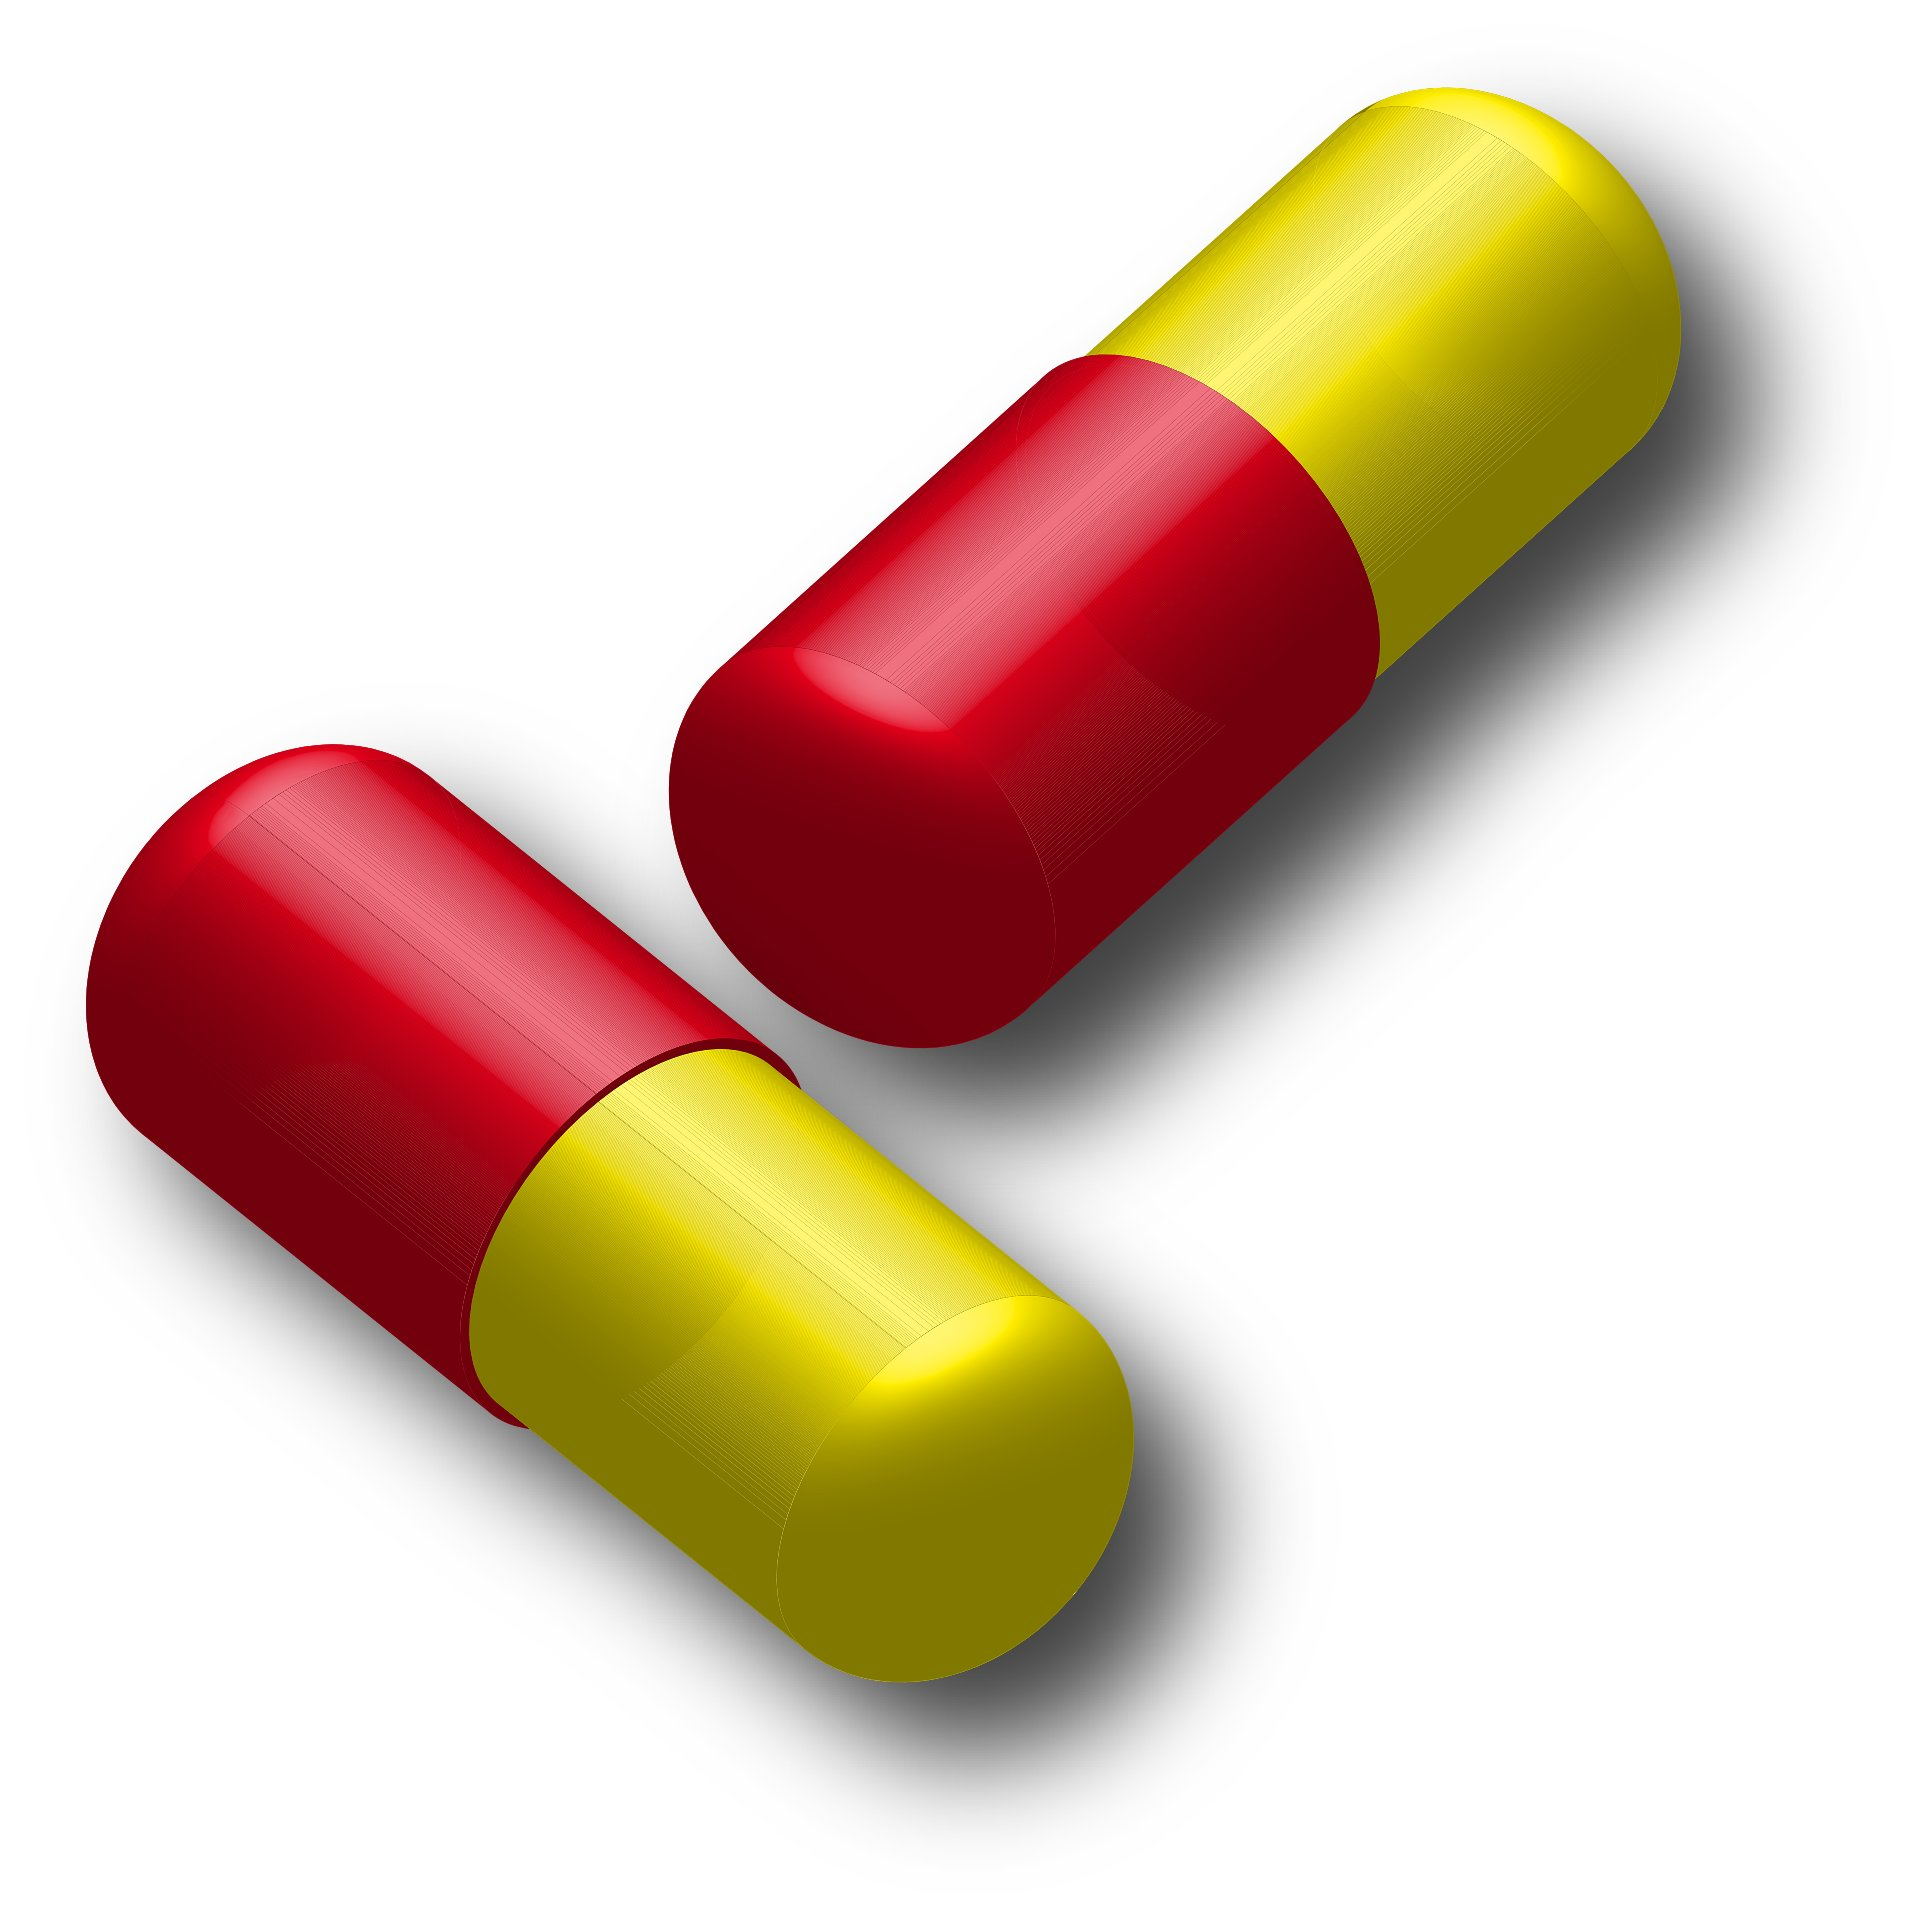 University of Minnesota tests 'smart' pills to give cancer patients a nudge